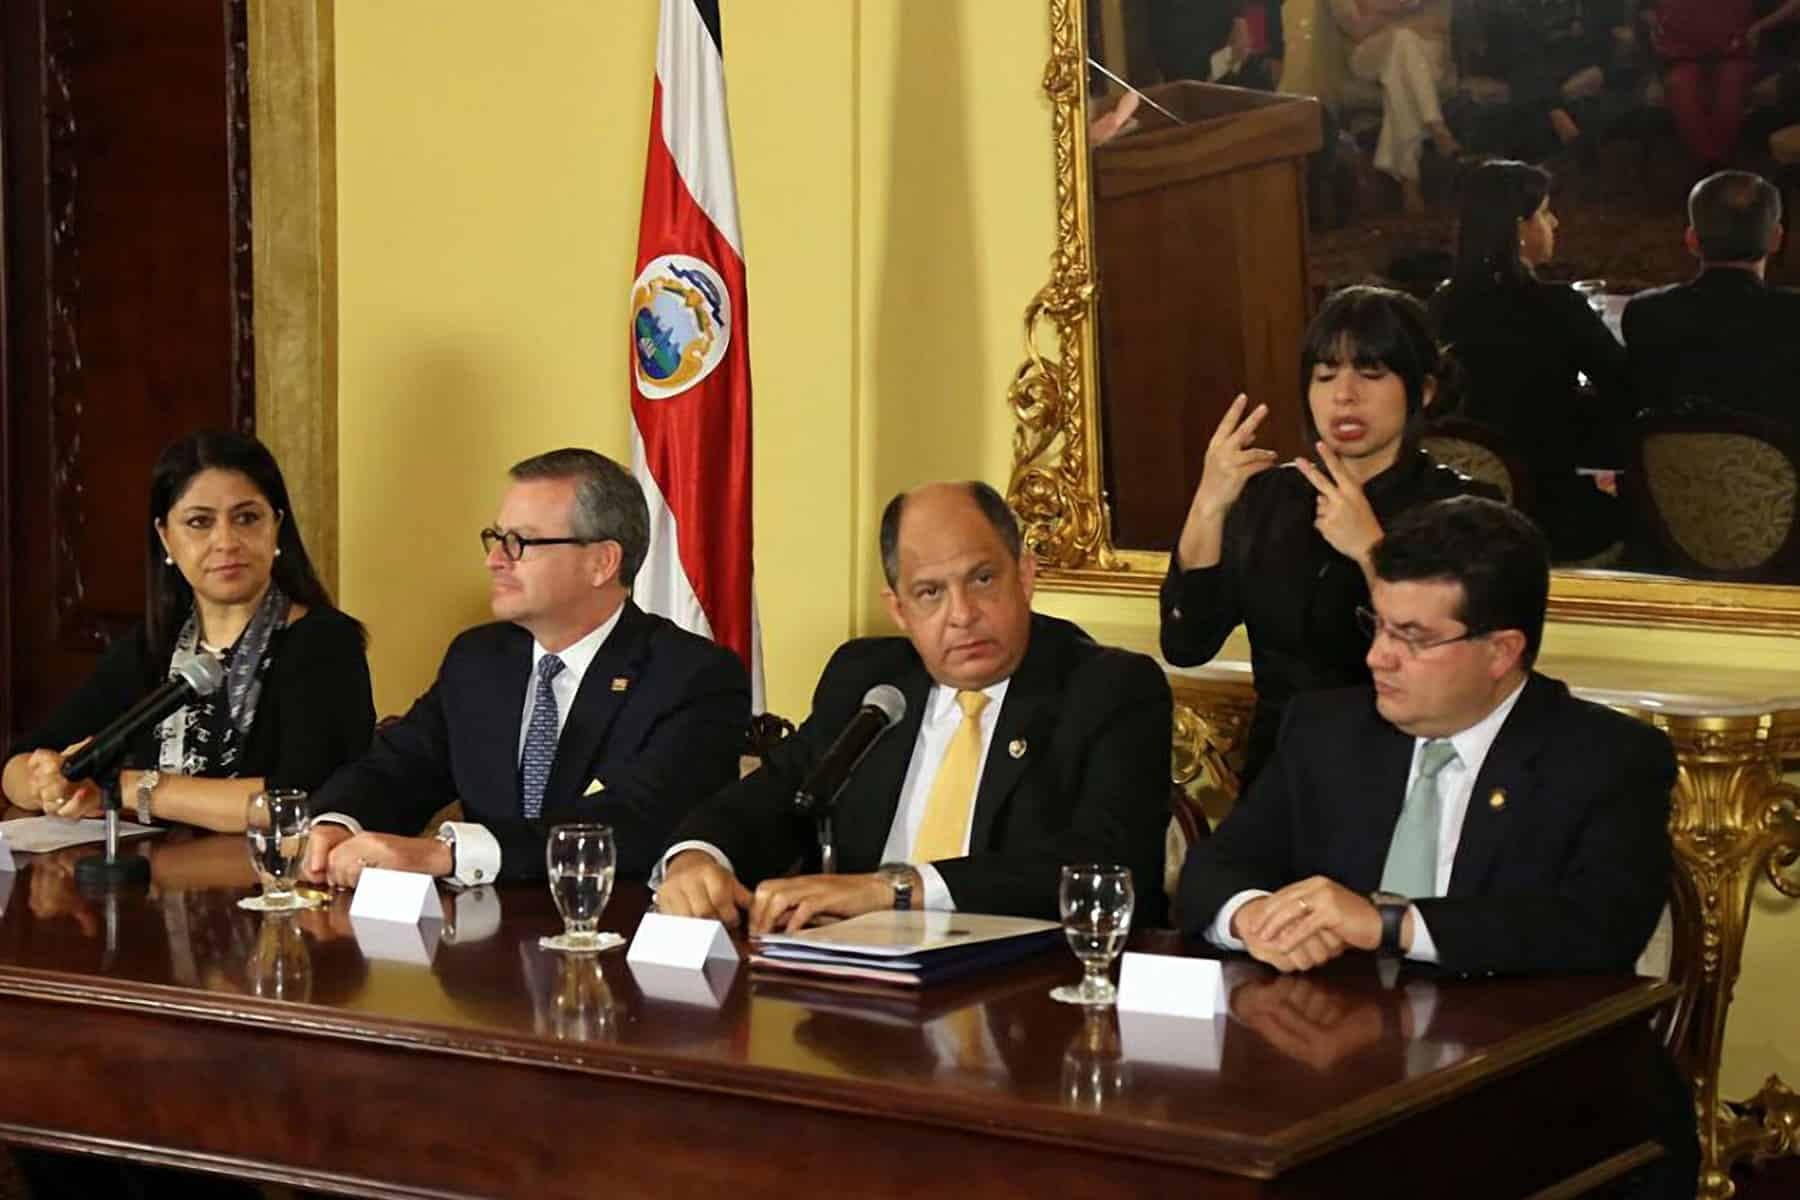 Press conference on Cuban migrants crisis. Dec. 18, 2015.